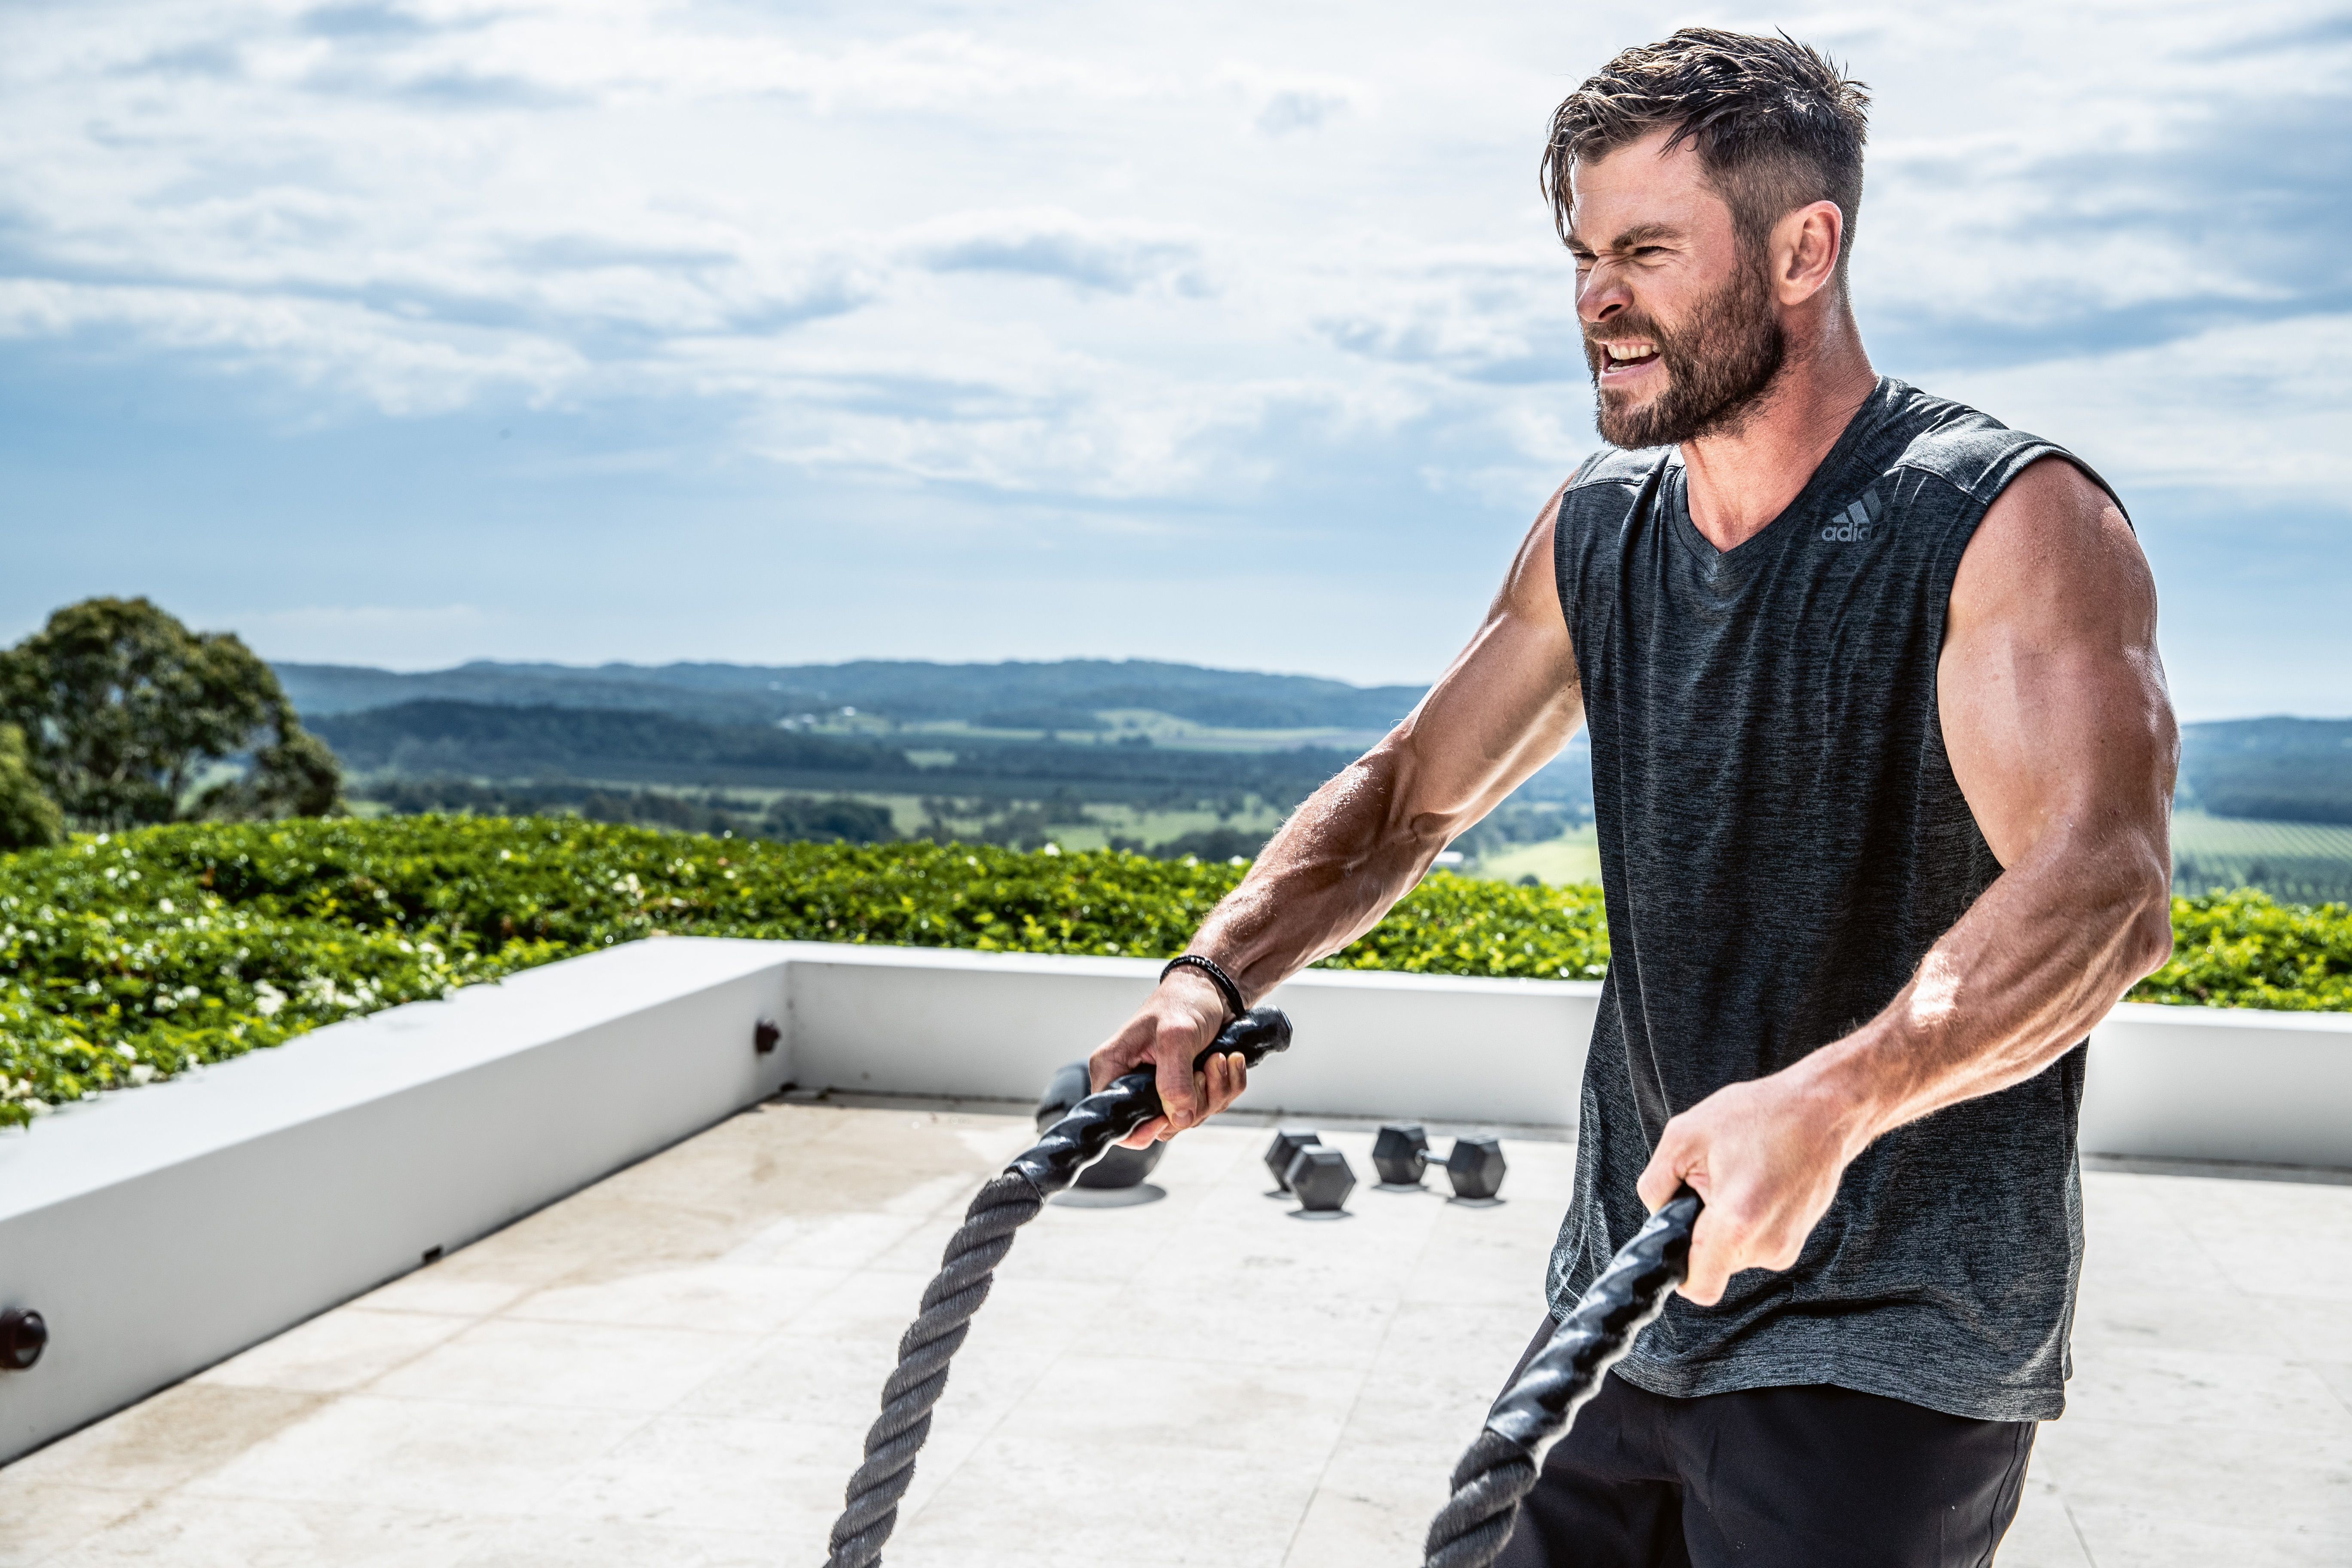 1600x1200 Chris Hemsworth Mens Health 2019 5k 1600x1200 Resolution Hd 4k Wallpapers Images Backgrounds Photos And Pictures